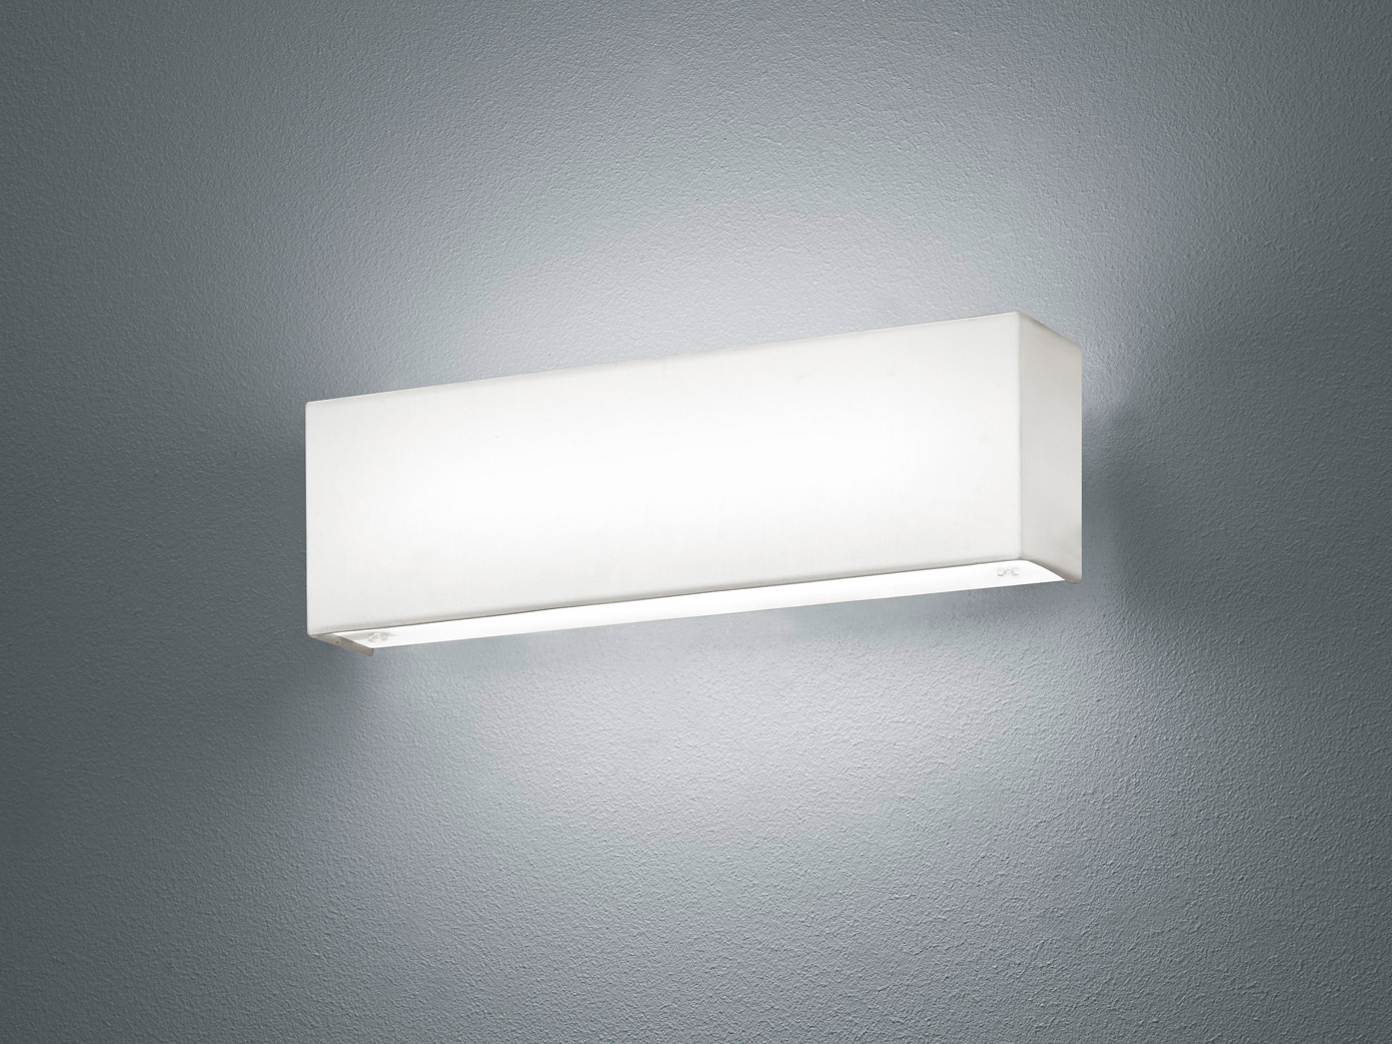 Trio led applique set lugano bianco con interruttore uplight